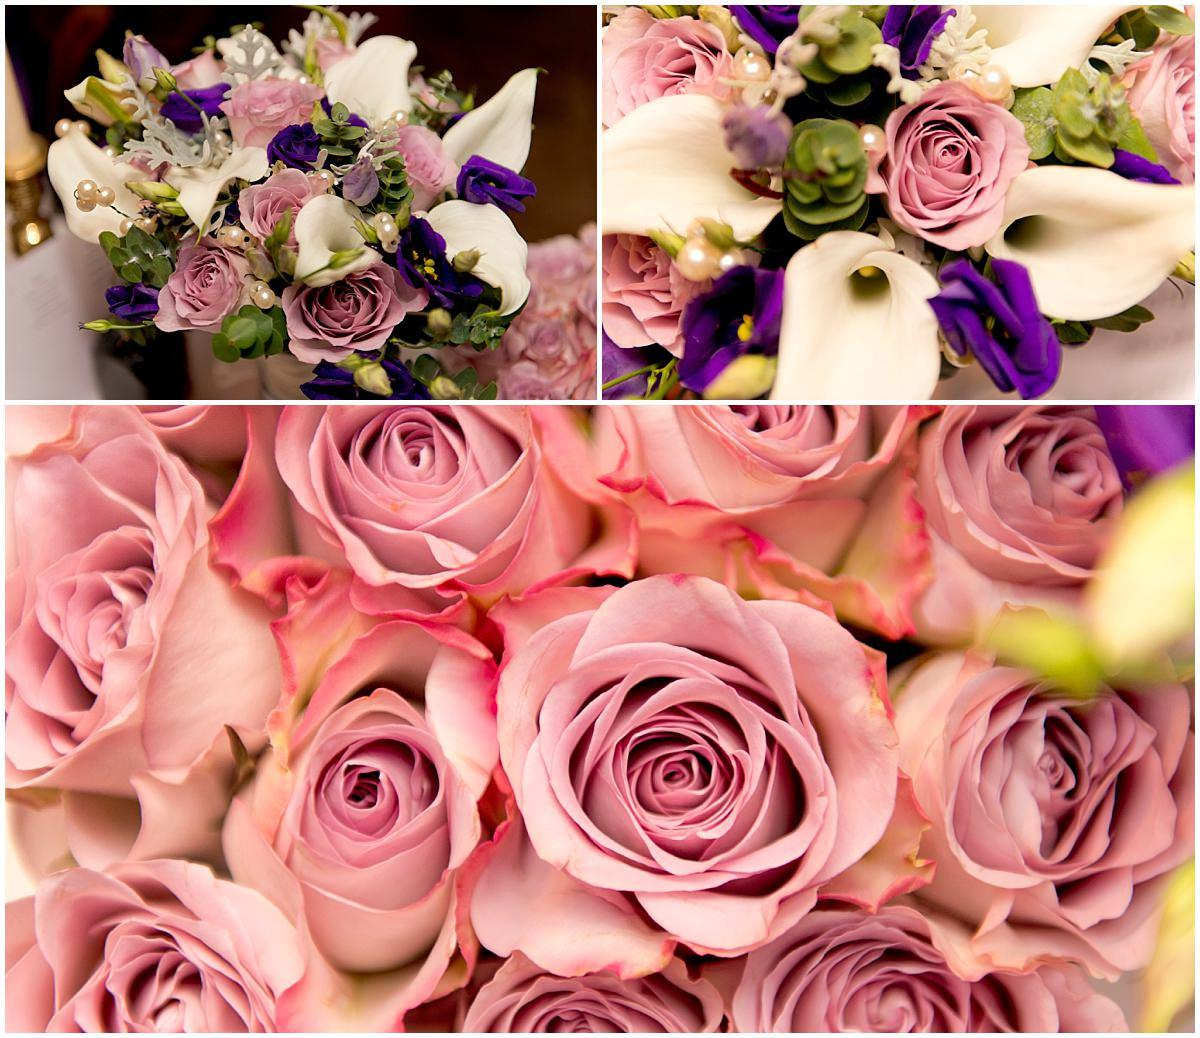 Choosing Your Wedding Flowers 19